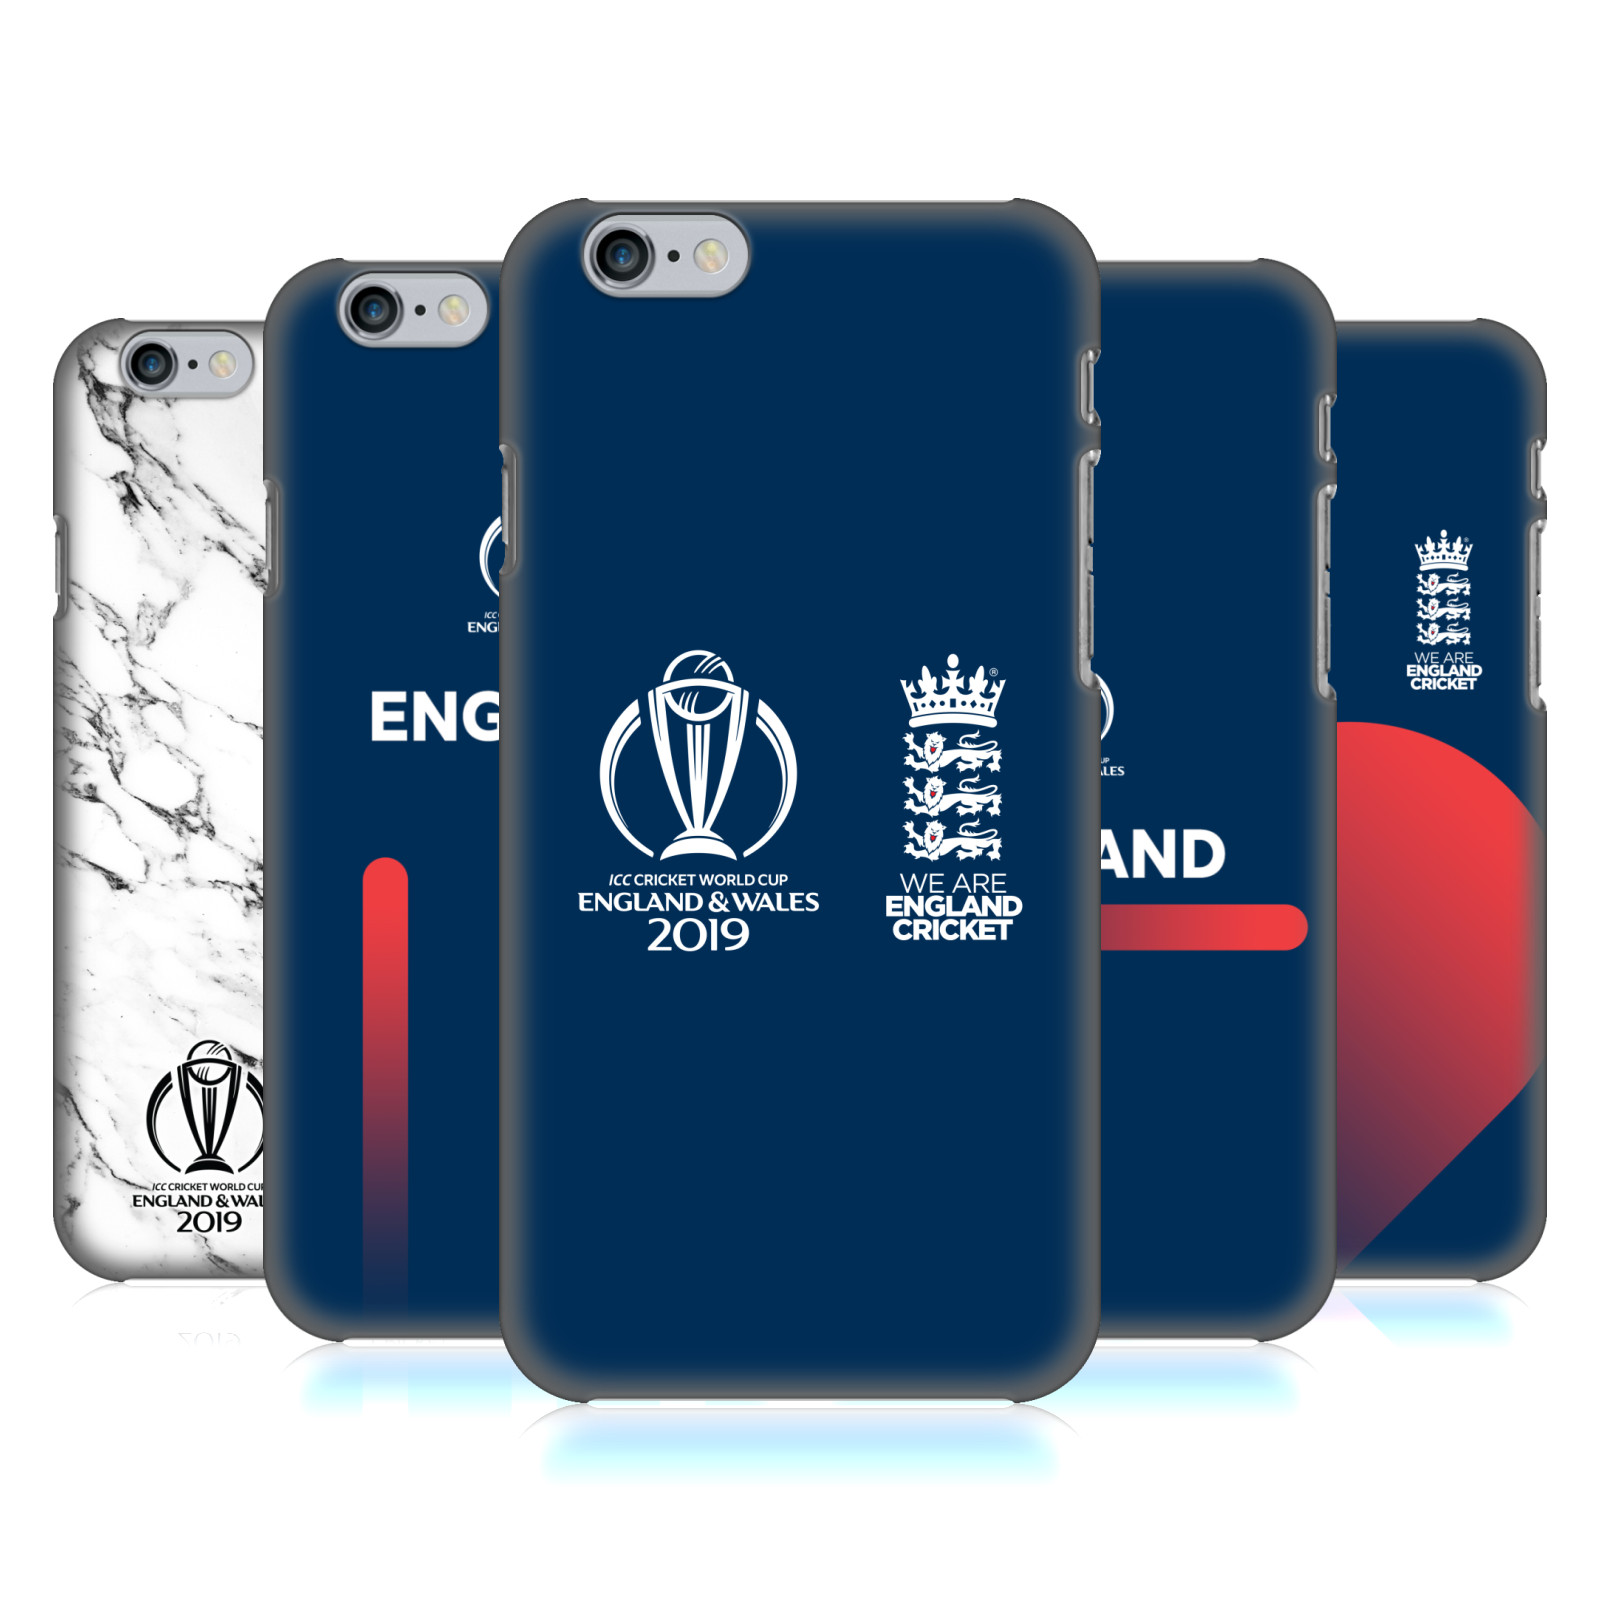 ICC England Phone and Tablet cases